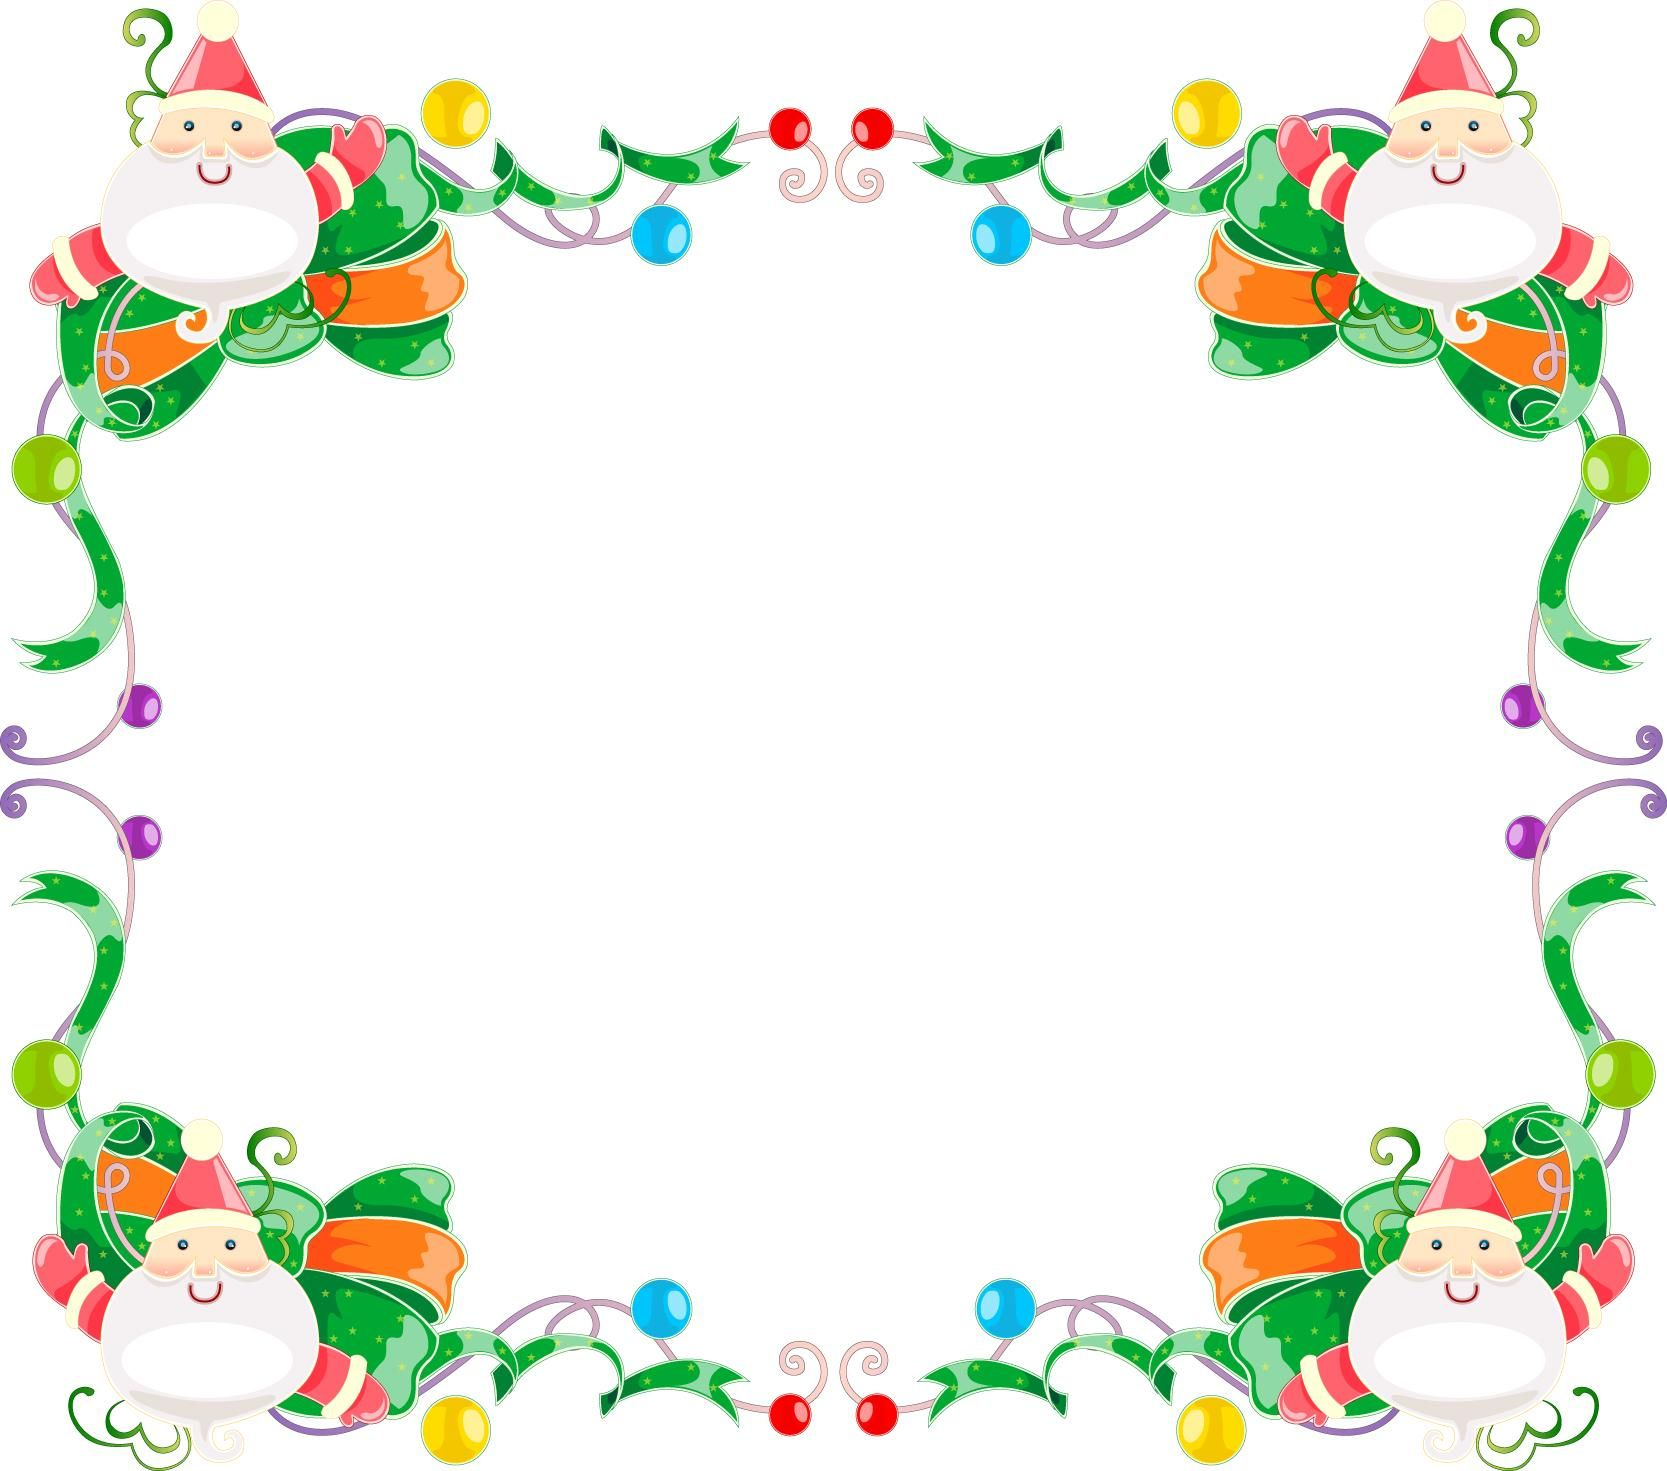 Christmas Design Borders images.